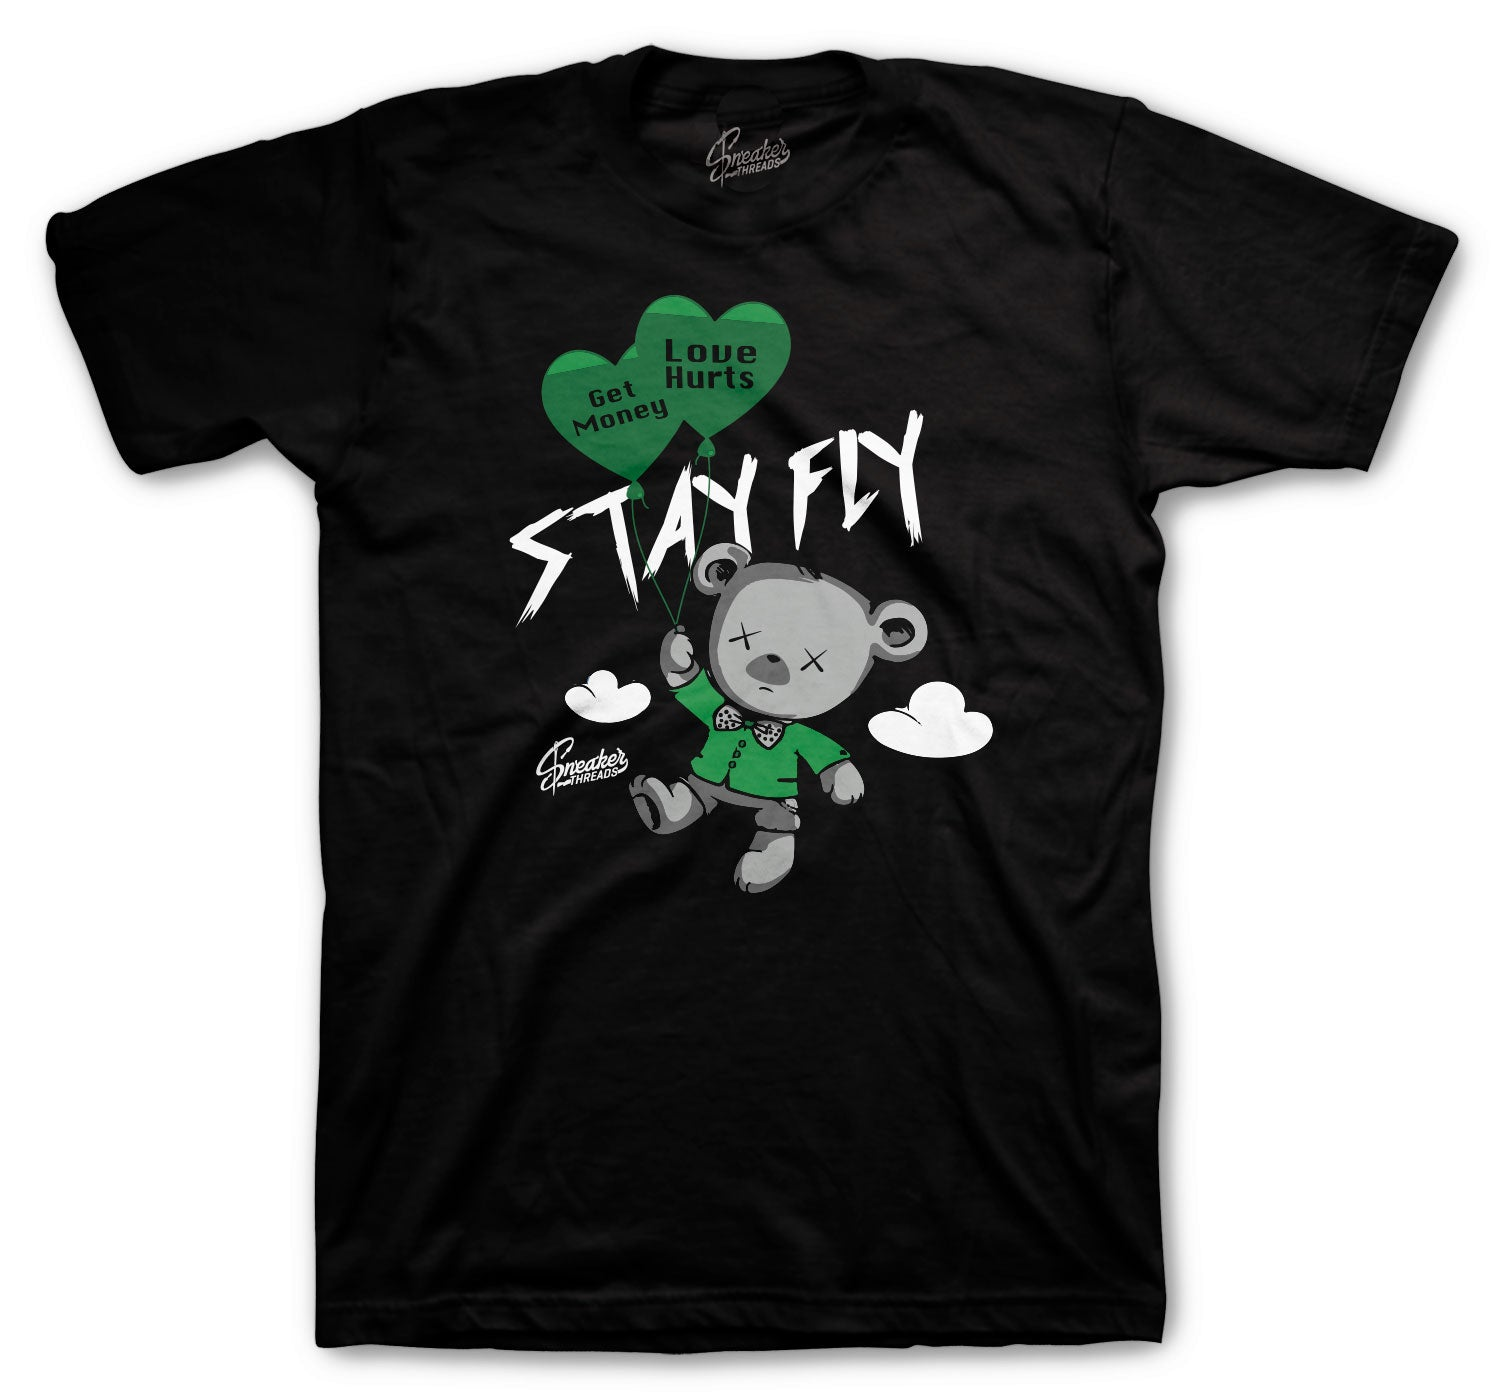 Jordan 13 Lucky Green Shirt - Money Over Love - Black